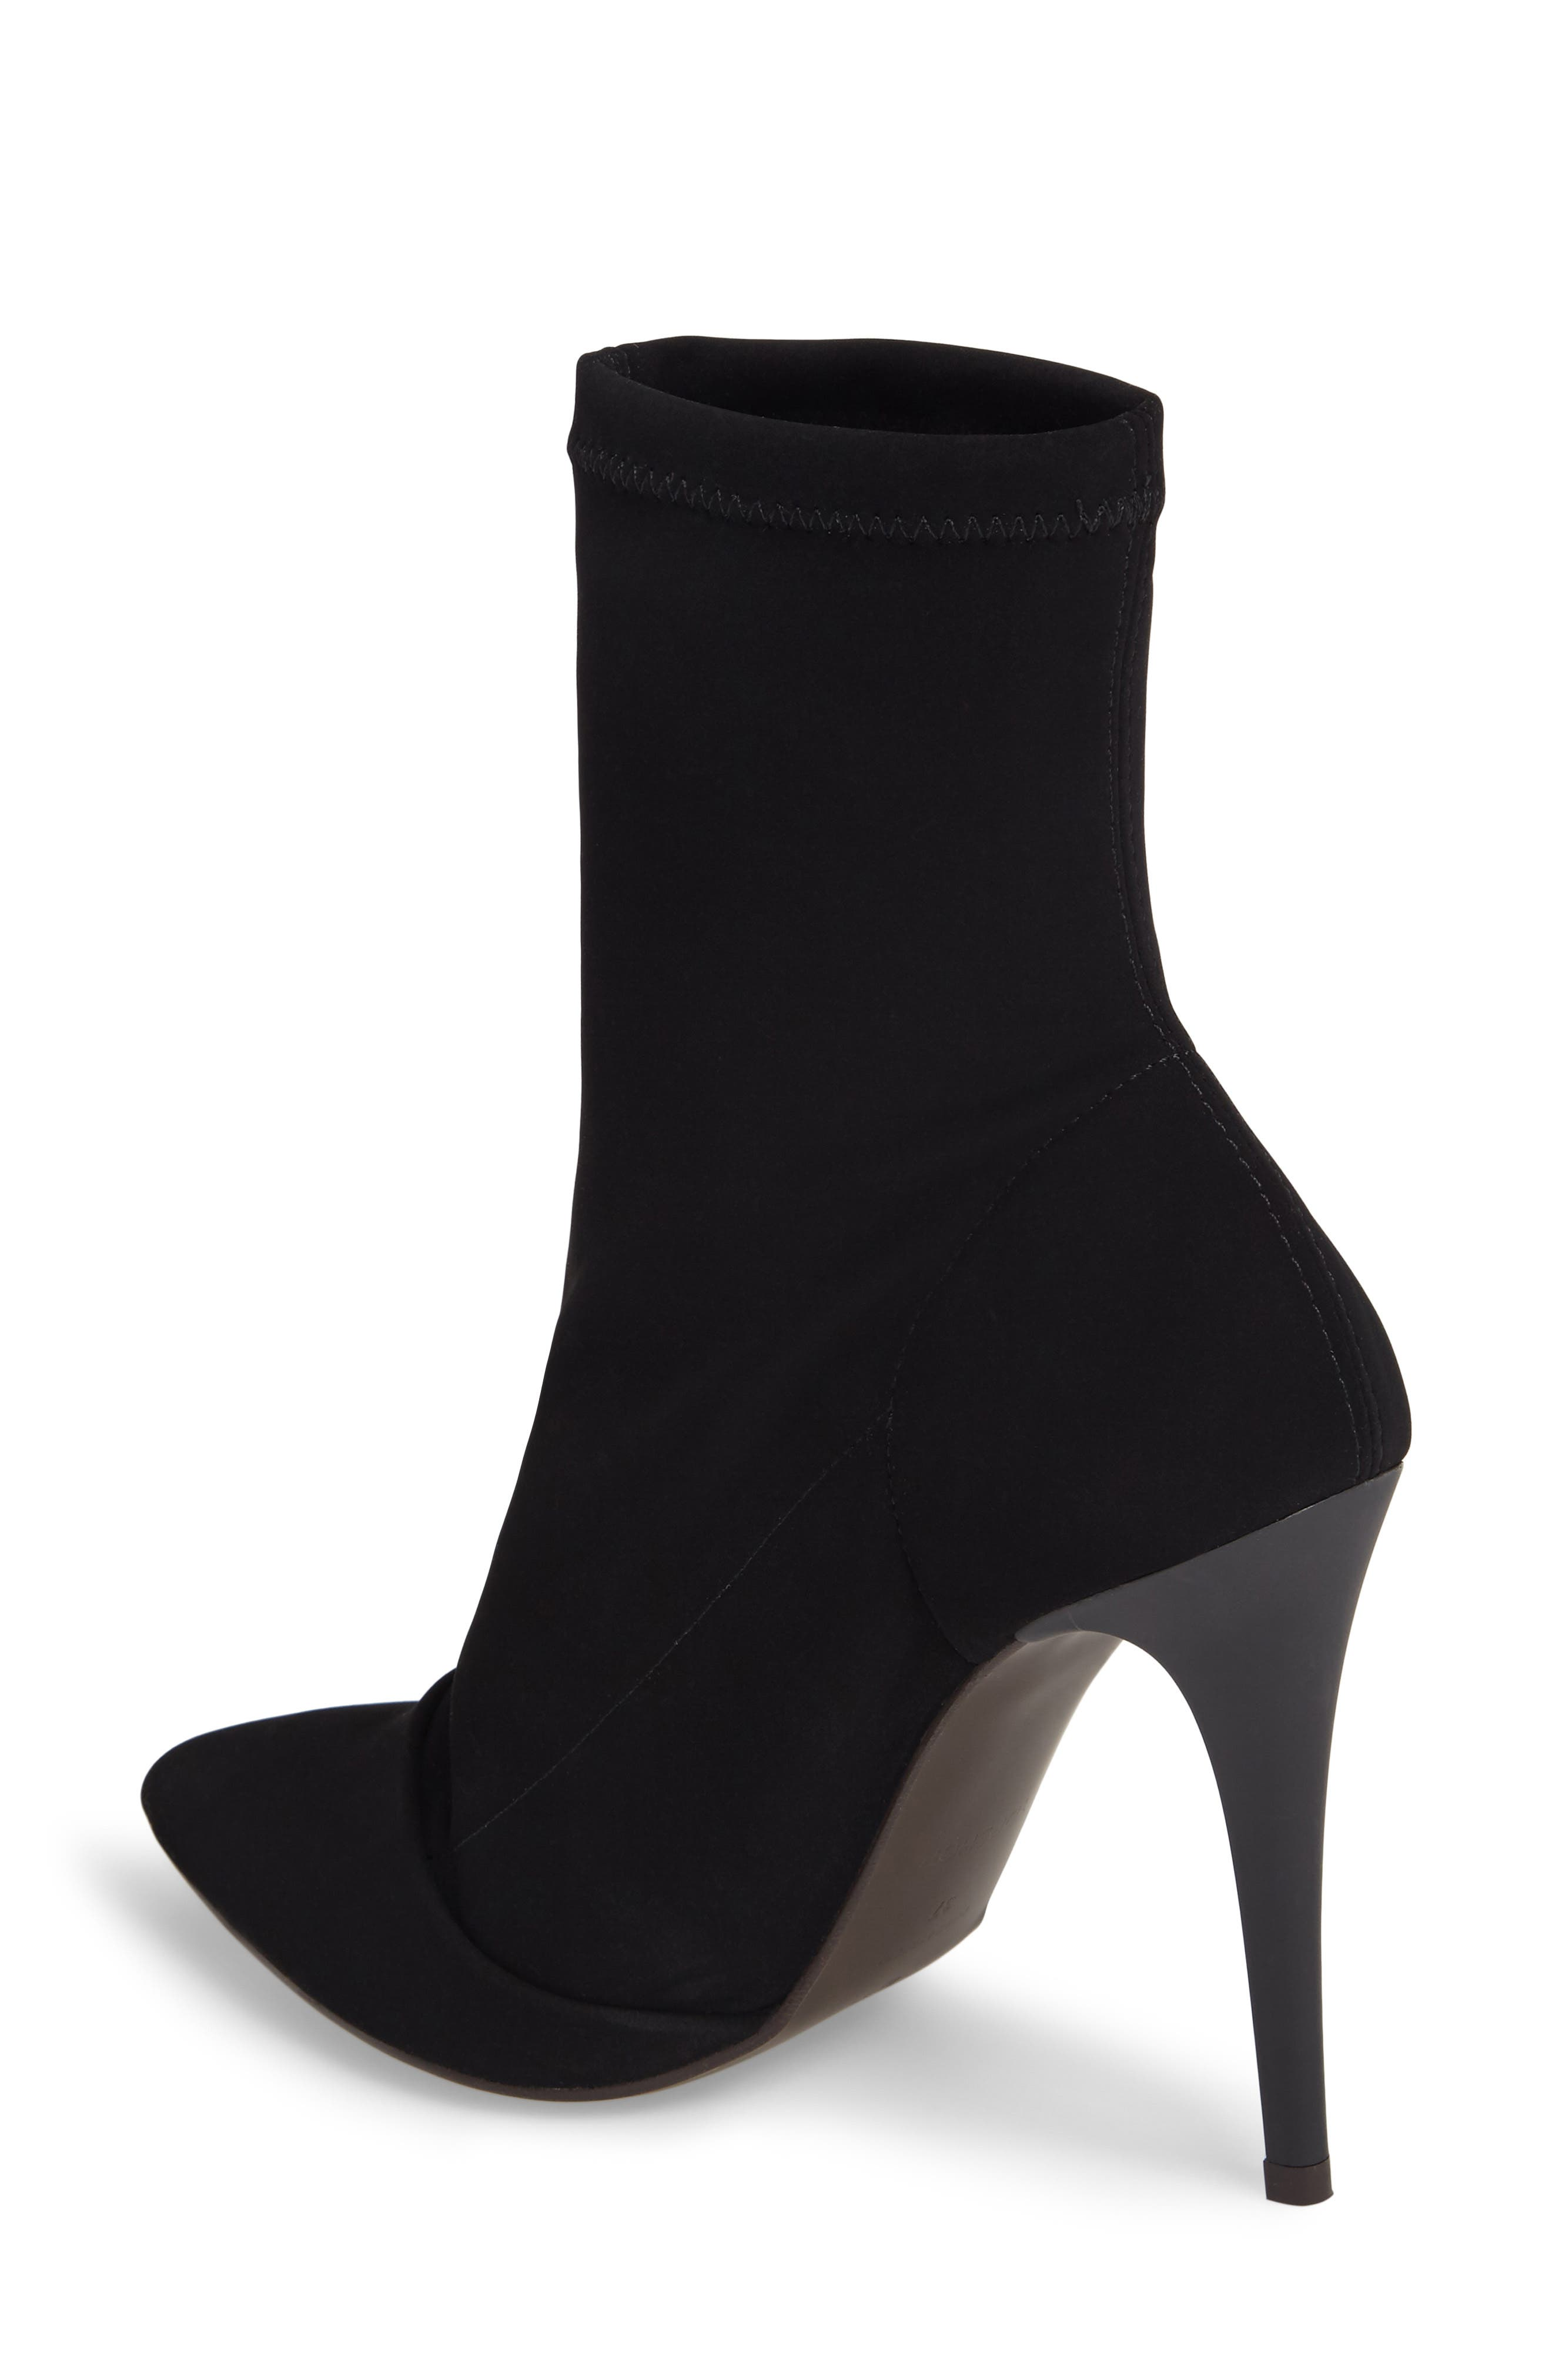 Hubba Pointy Toe Bootie,                             Alternate thumbnail 2, color,                             001